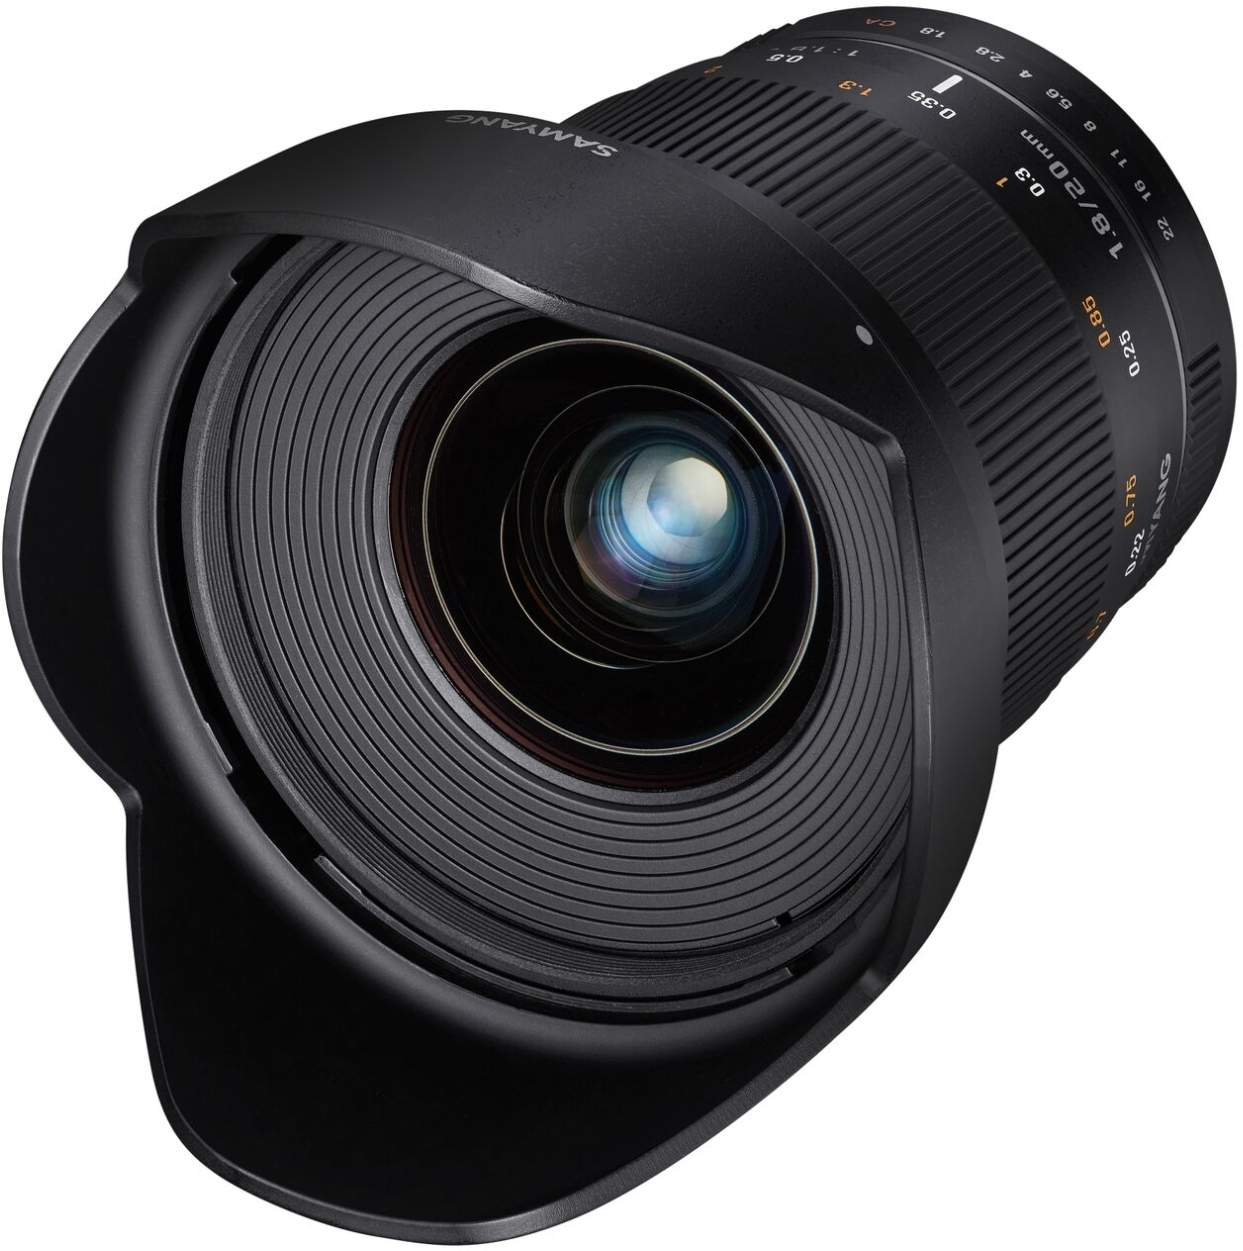 Samyang 20mm F1.8 UMC II MFT Full Frame Camera Lens